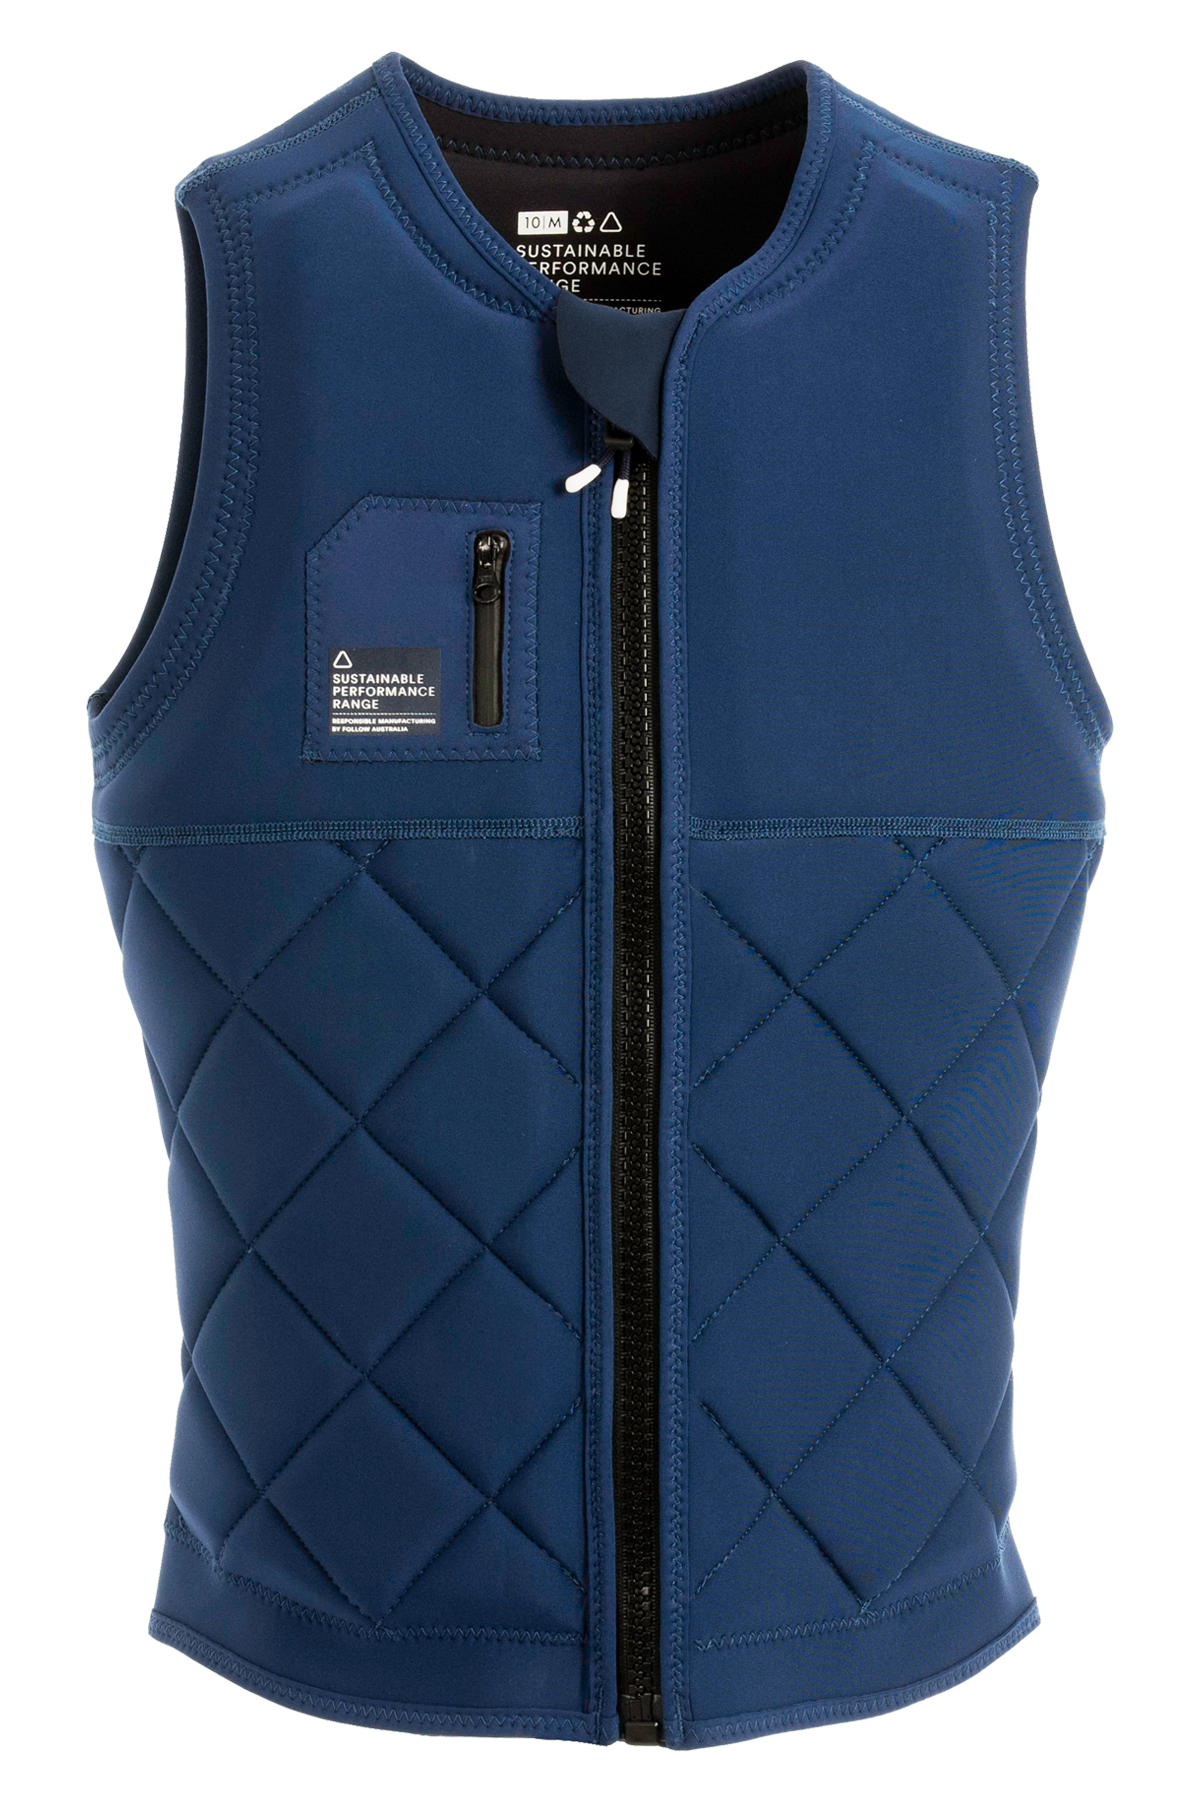 S.P.R. FREEMONT LADIES IMPACT VEST - BLUE FOLLOW 2019